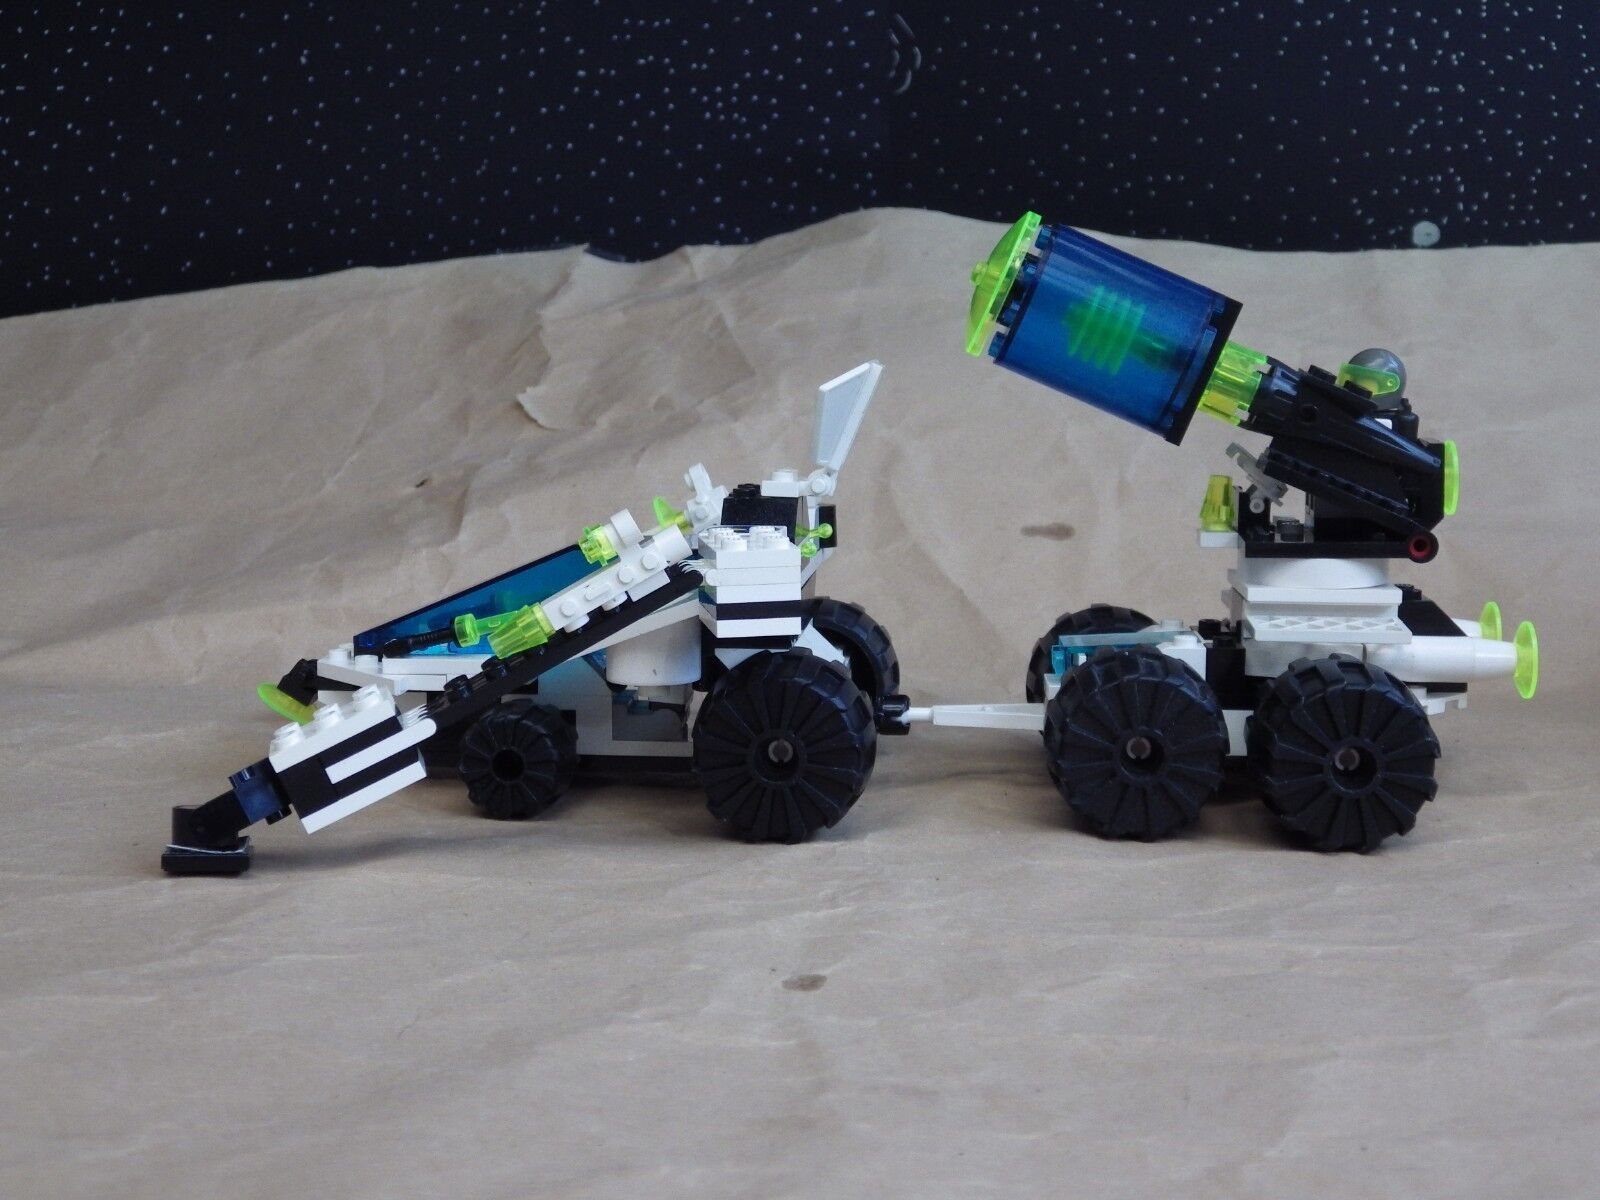 Lego 6938 1737 - Scorpion Detector - Space  Exploriens